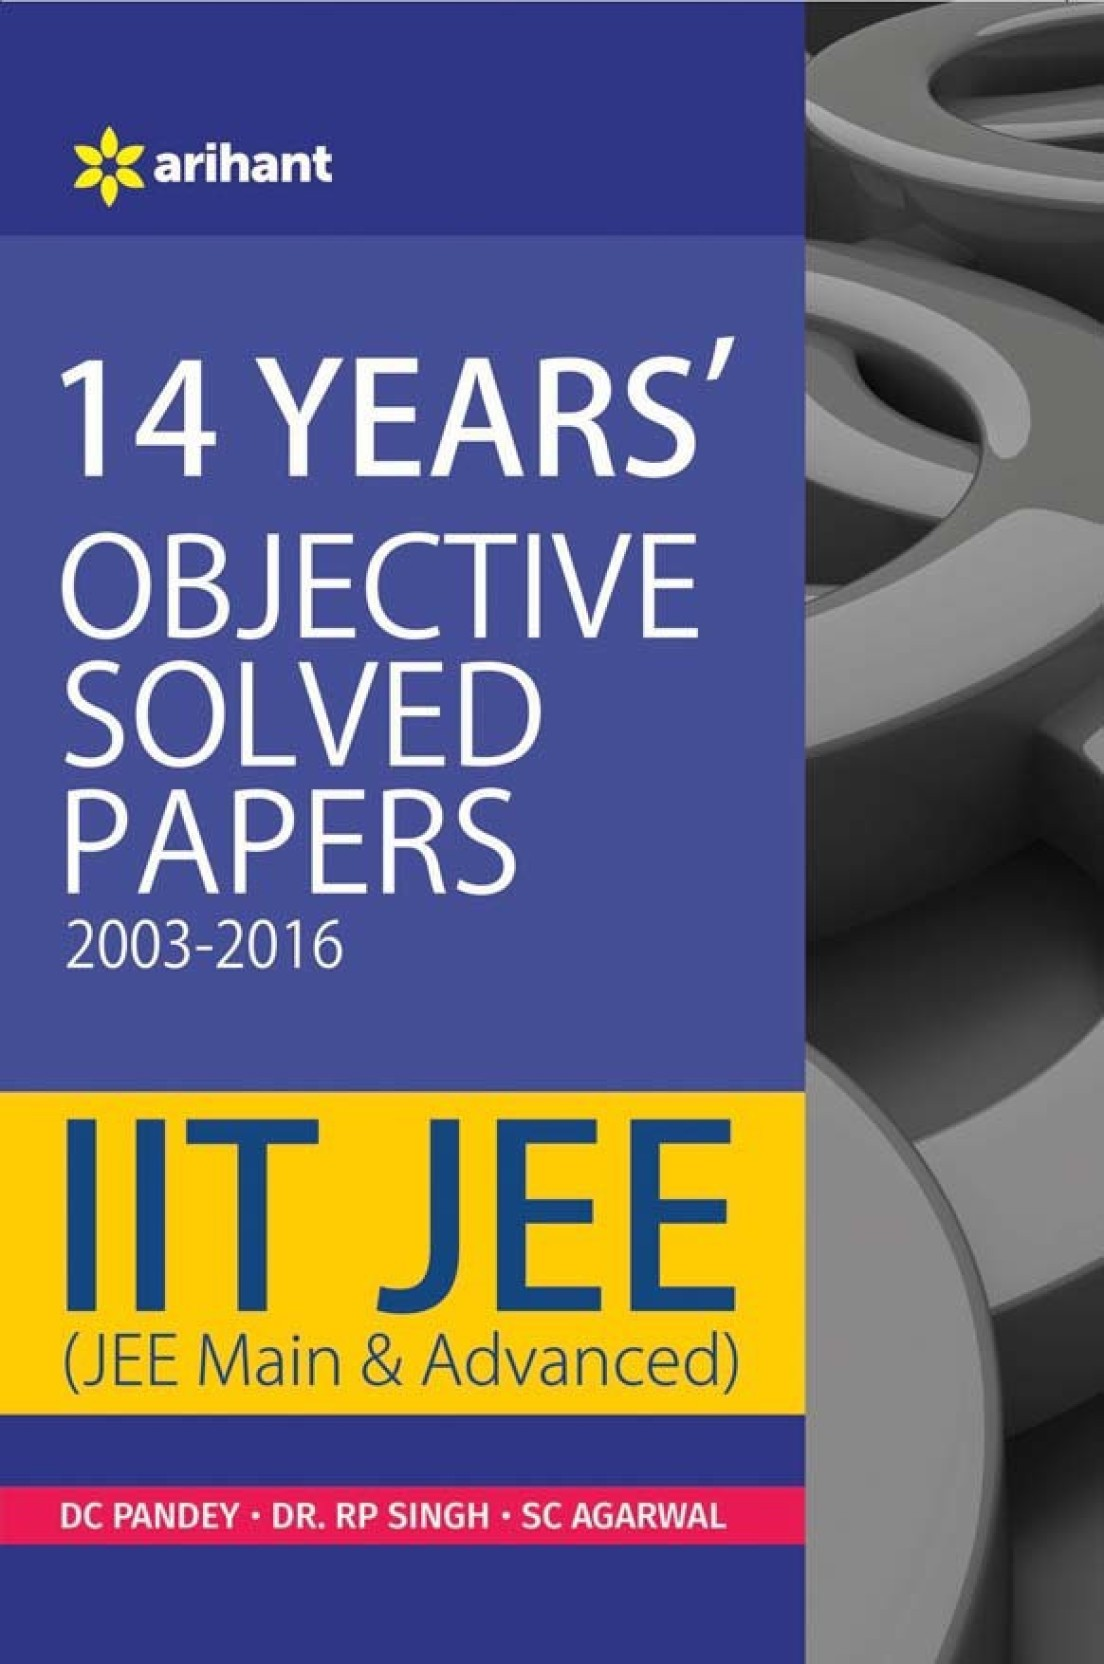 14 Years' Objective Solved Papers (2003-2016) IIT JEE (JEE MAIN. ADD TO CART